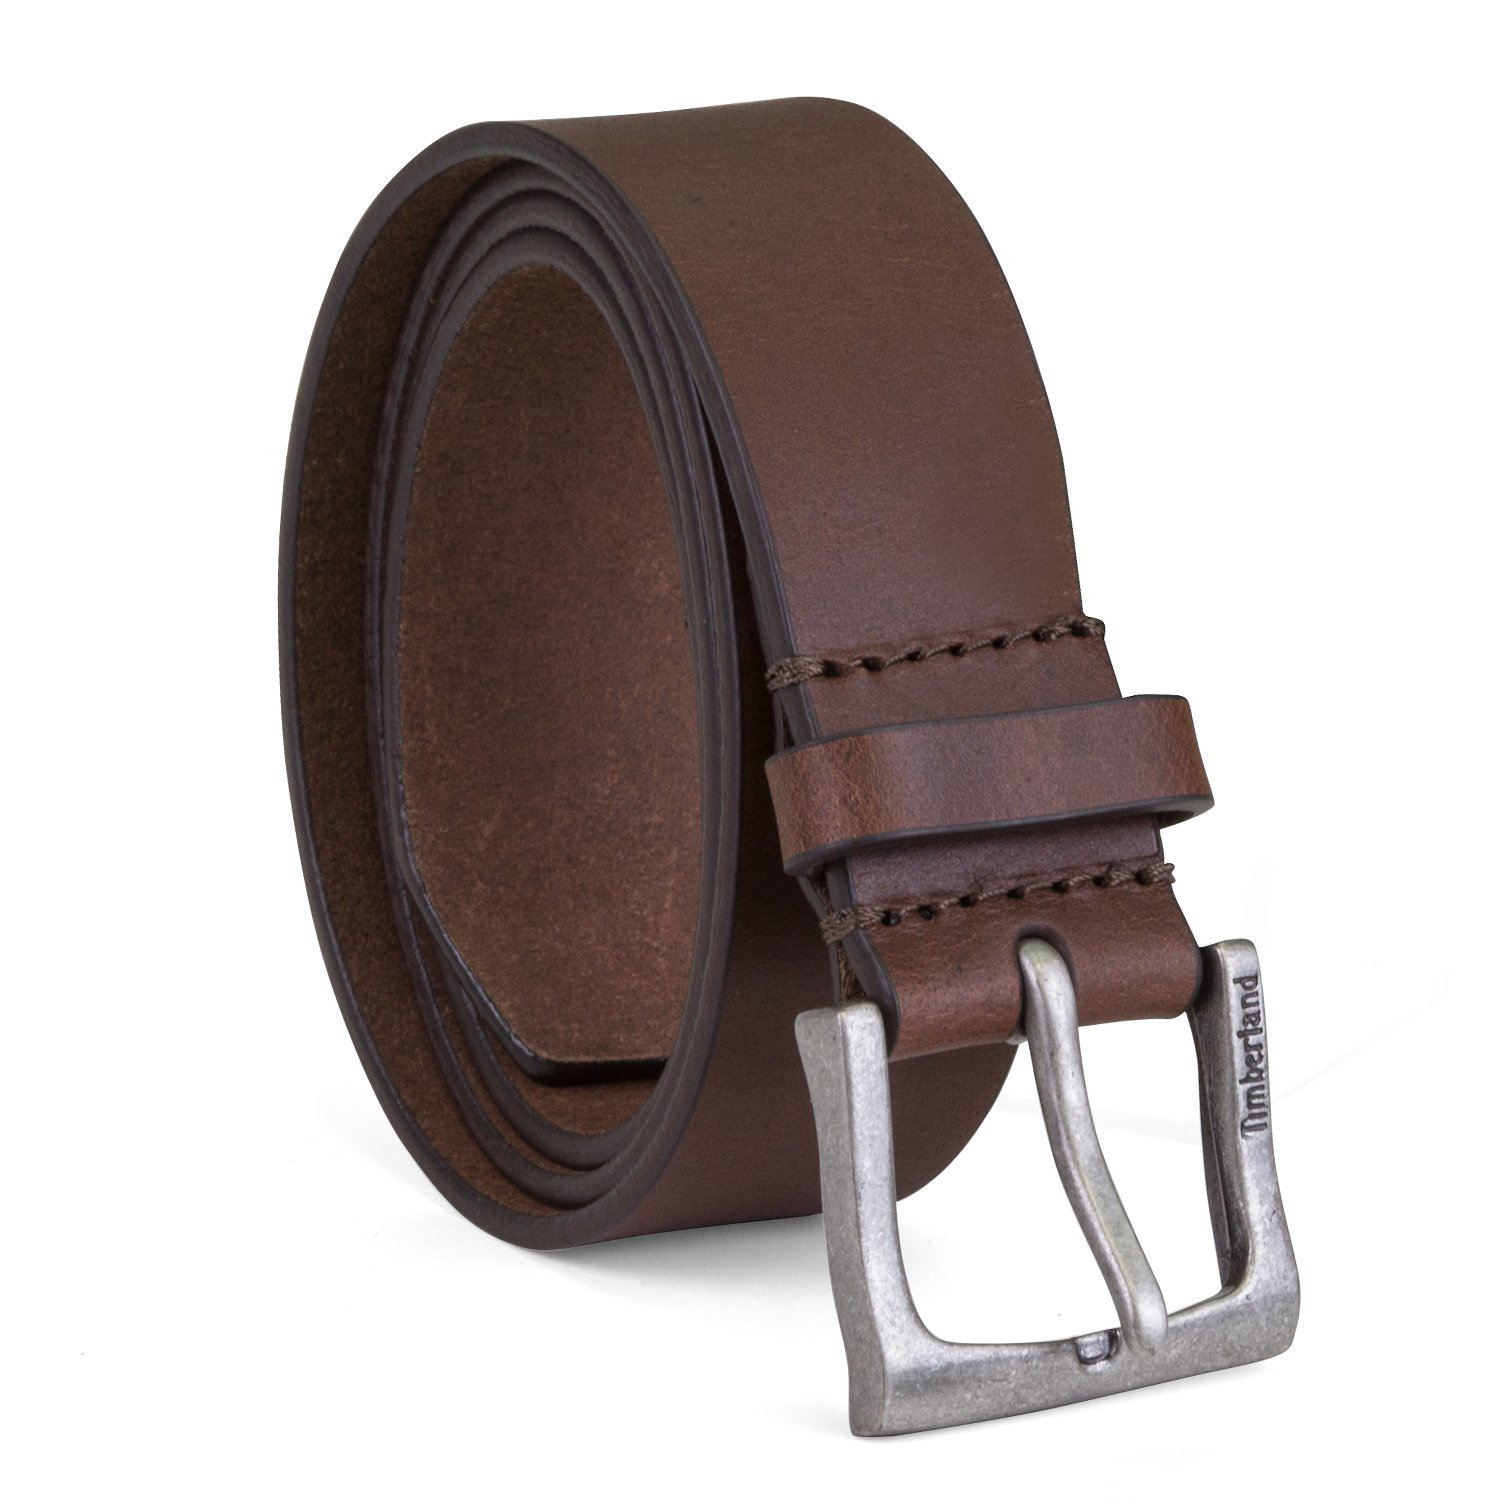 Timberland Mens Leather Belt Classic Jean Belt With Logo Buckle 1.4 Inches Wide (Big And Tall Sizes Available) Timberland Accessories